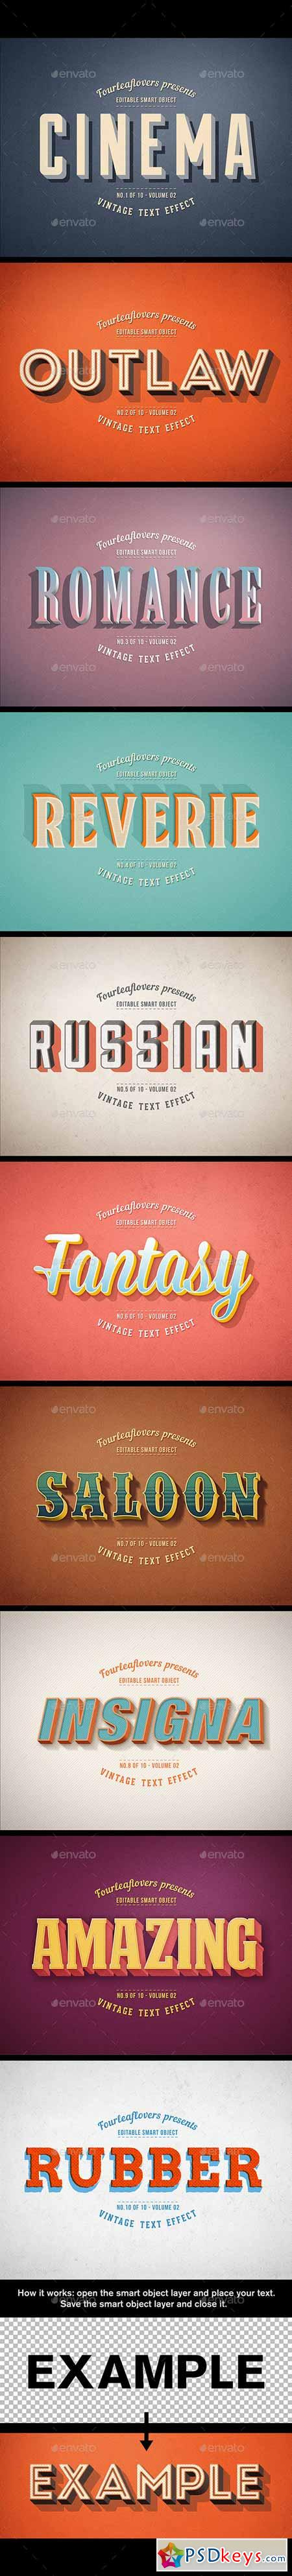 Retro PSD Text Effects vol.2 11754168